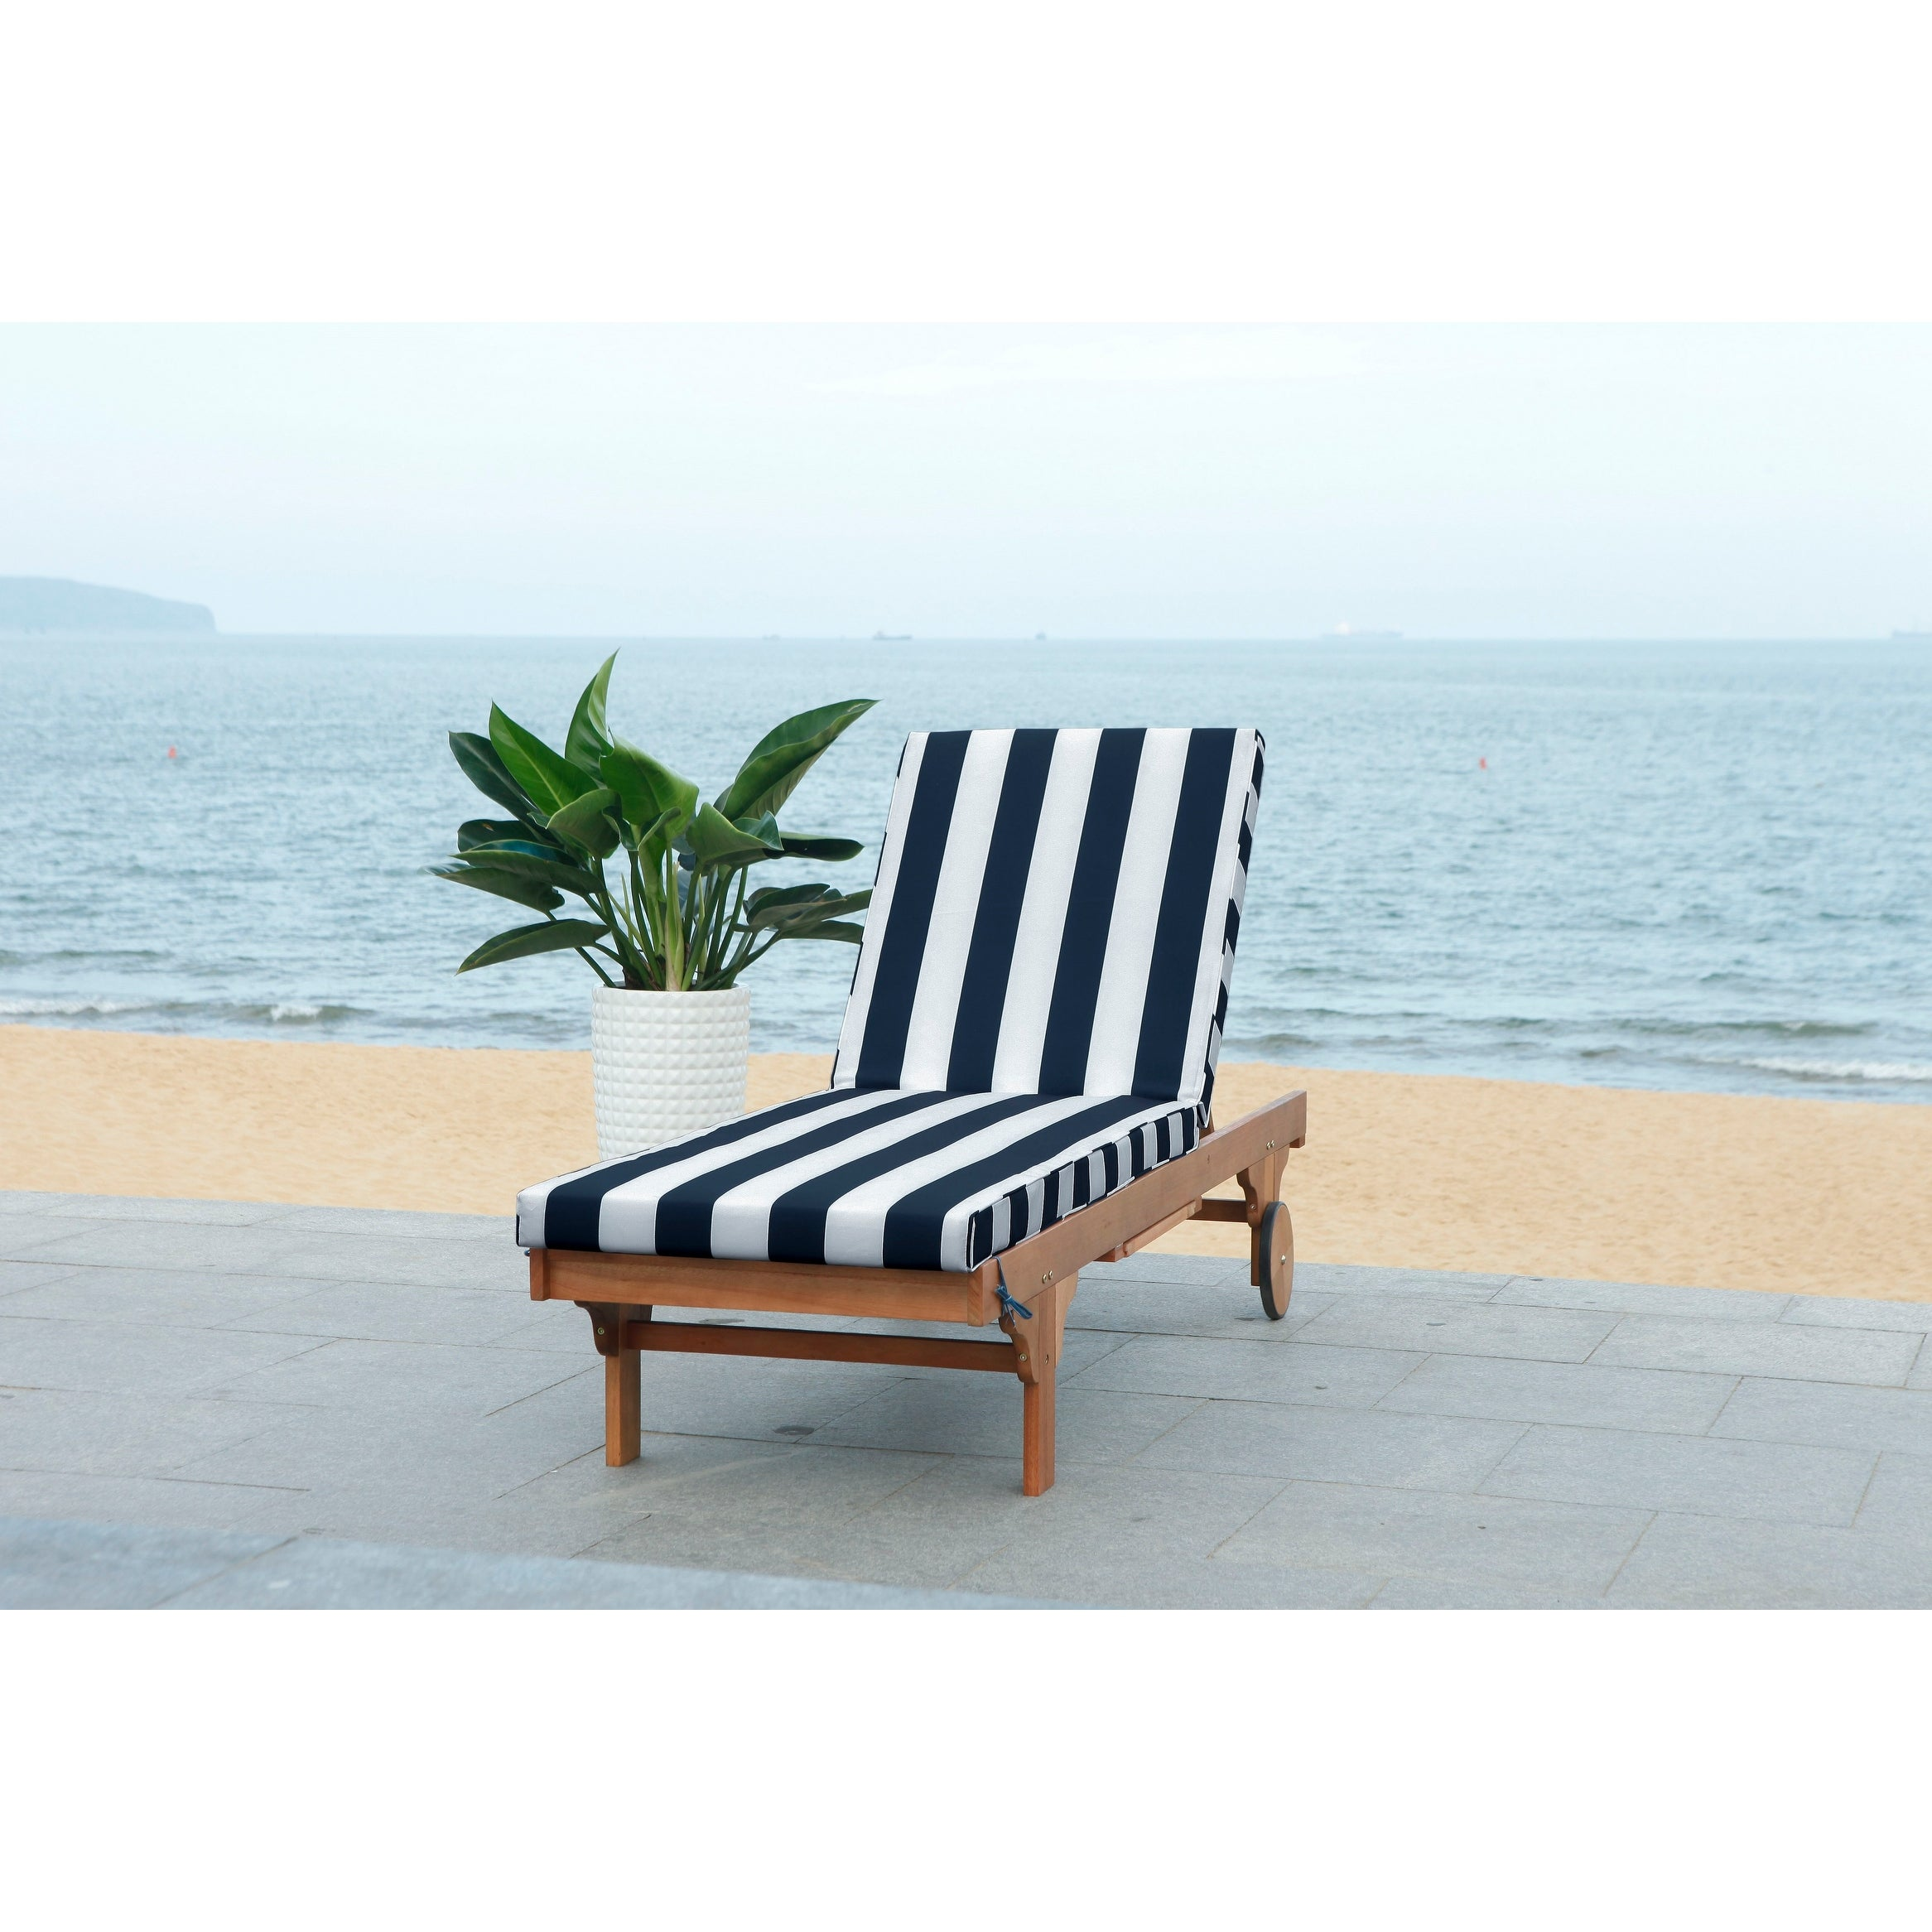 Safavieh Outdoor Navy White Striped Adjustable Chaise Lounge 27 6 X 78 7 X 14 2 On Sale Overstock 22286451